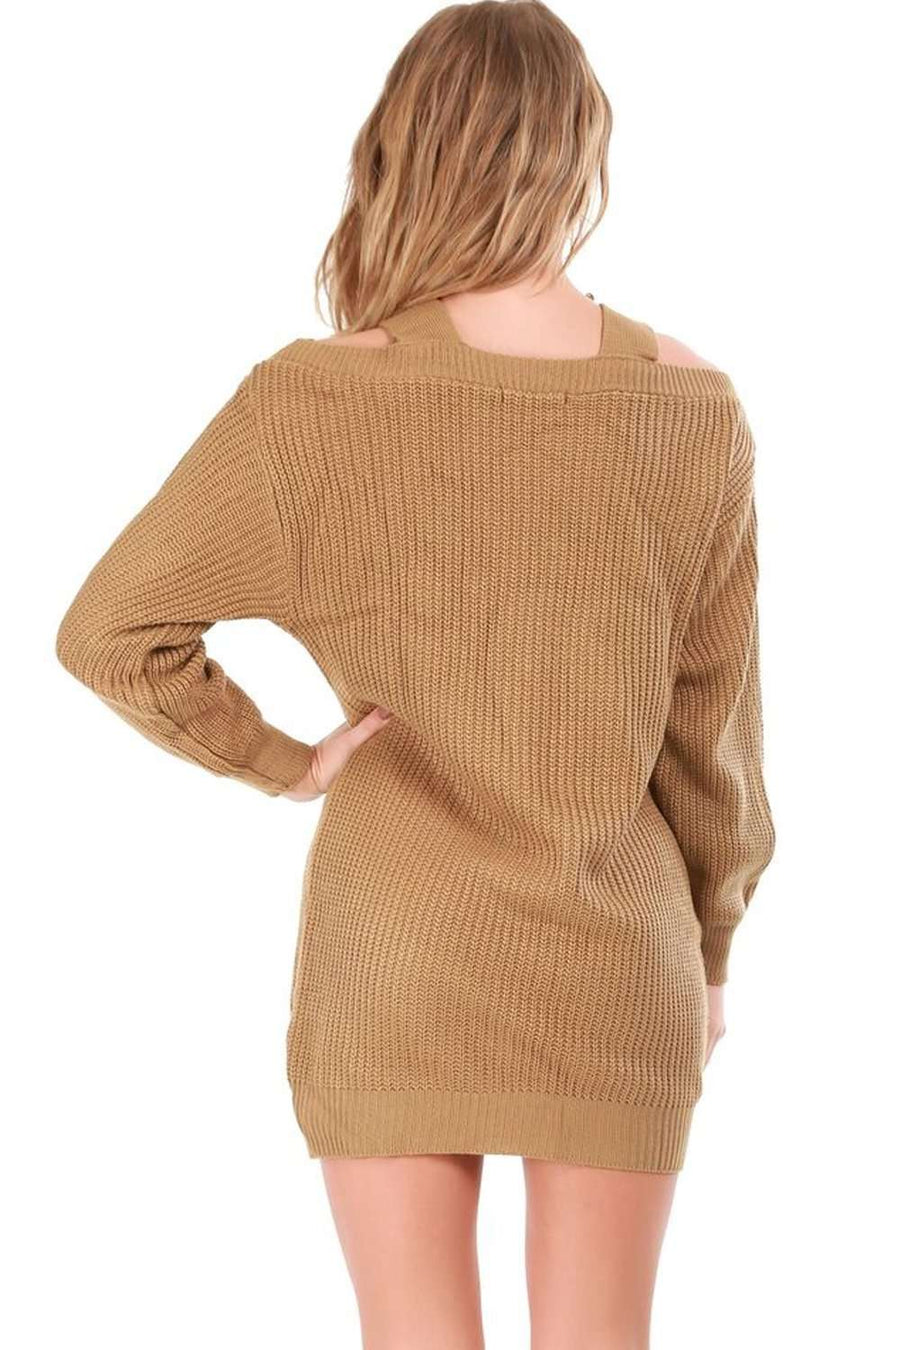 Cold Shoulder Beige Knitted Jumper Dress - bejealous-com